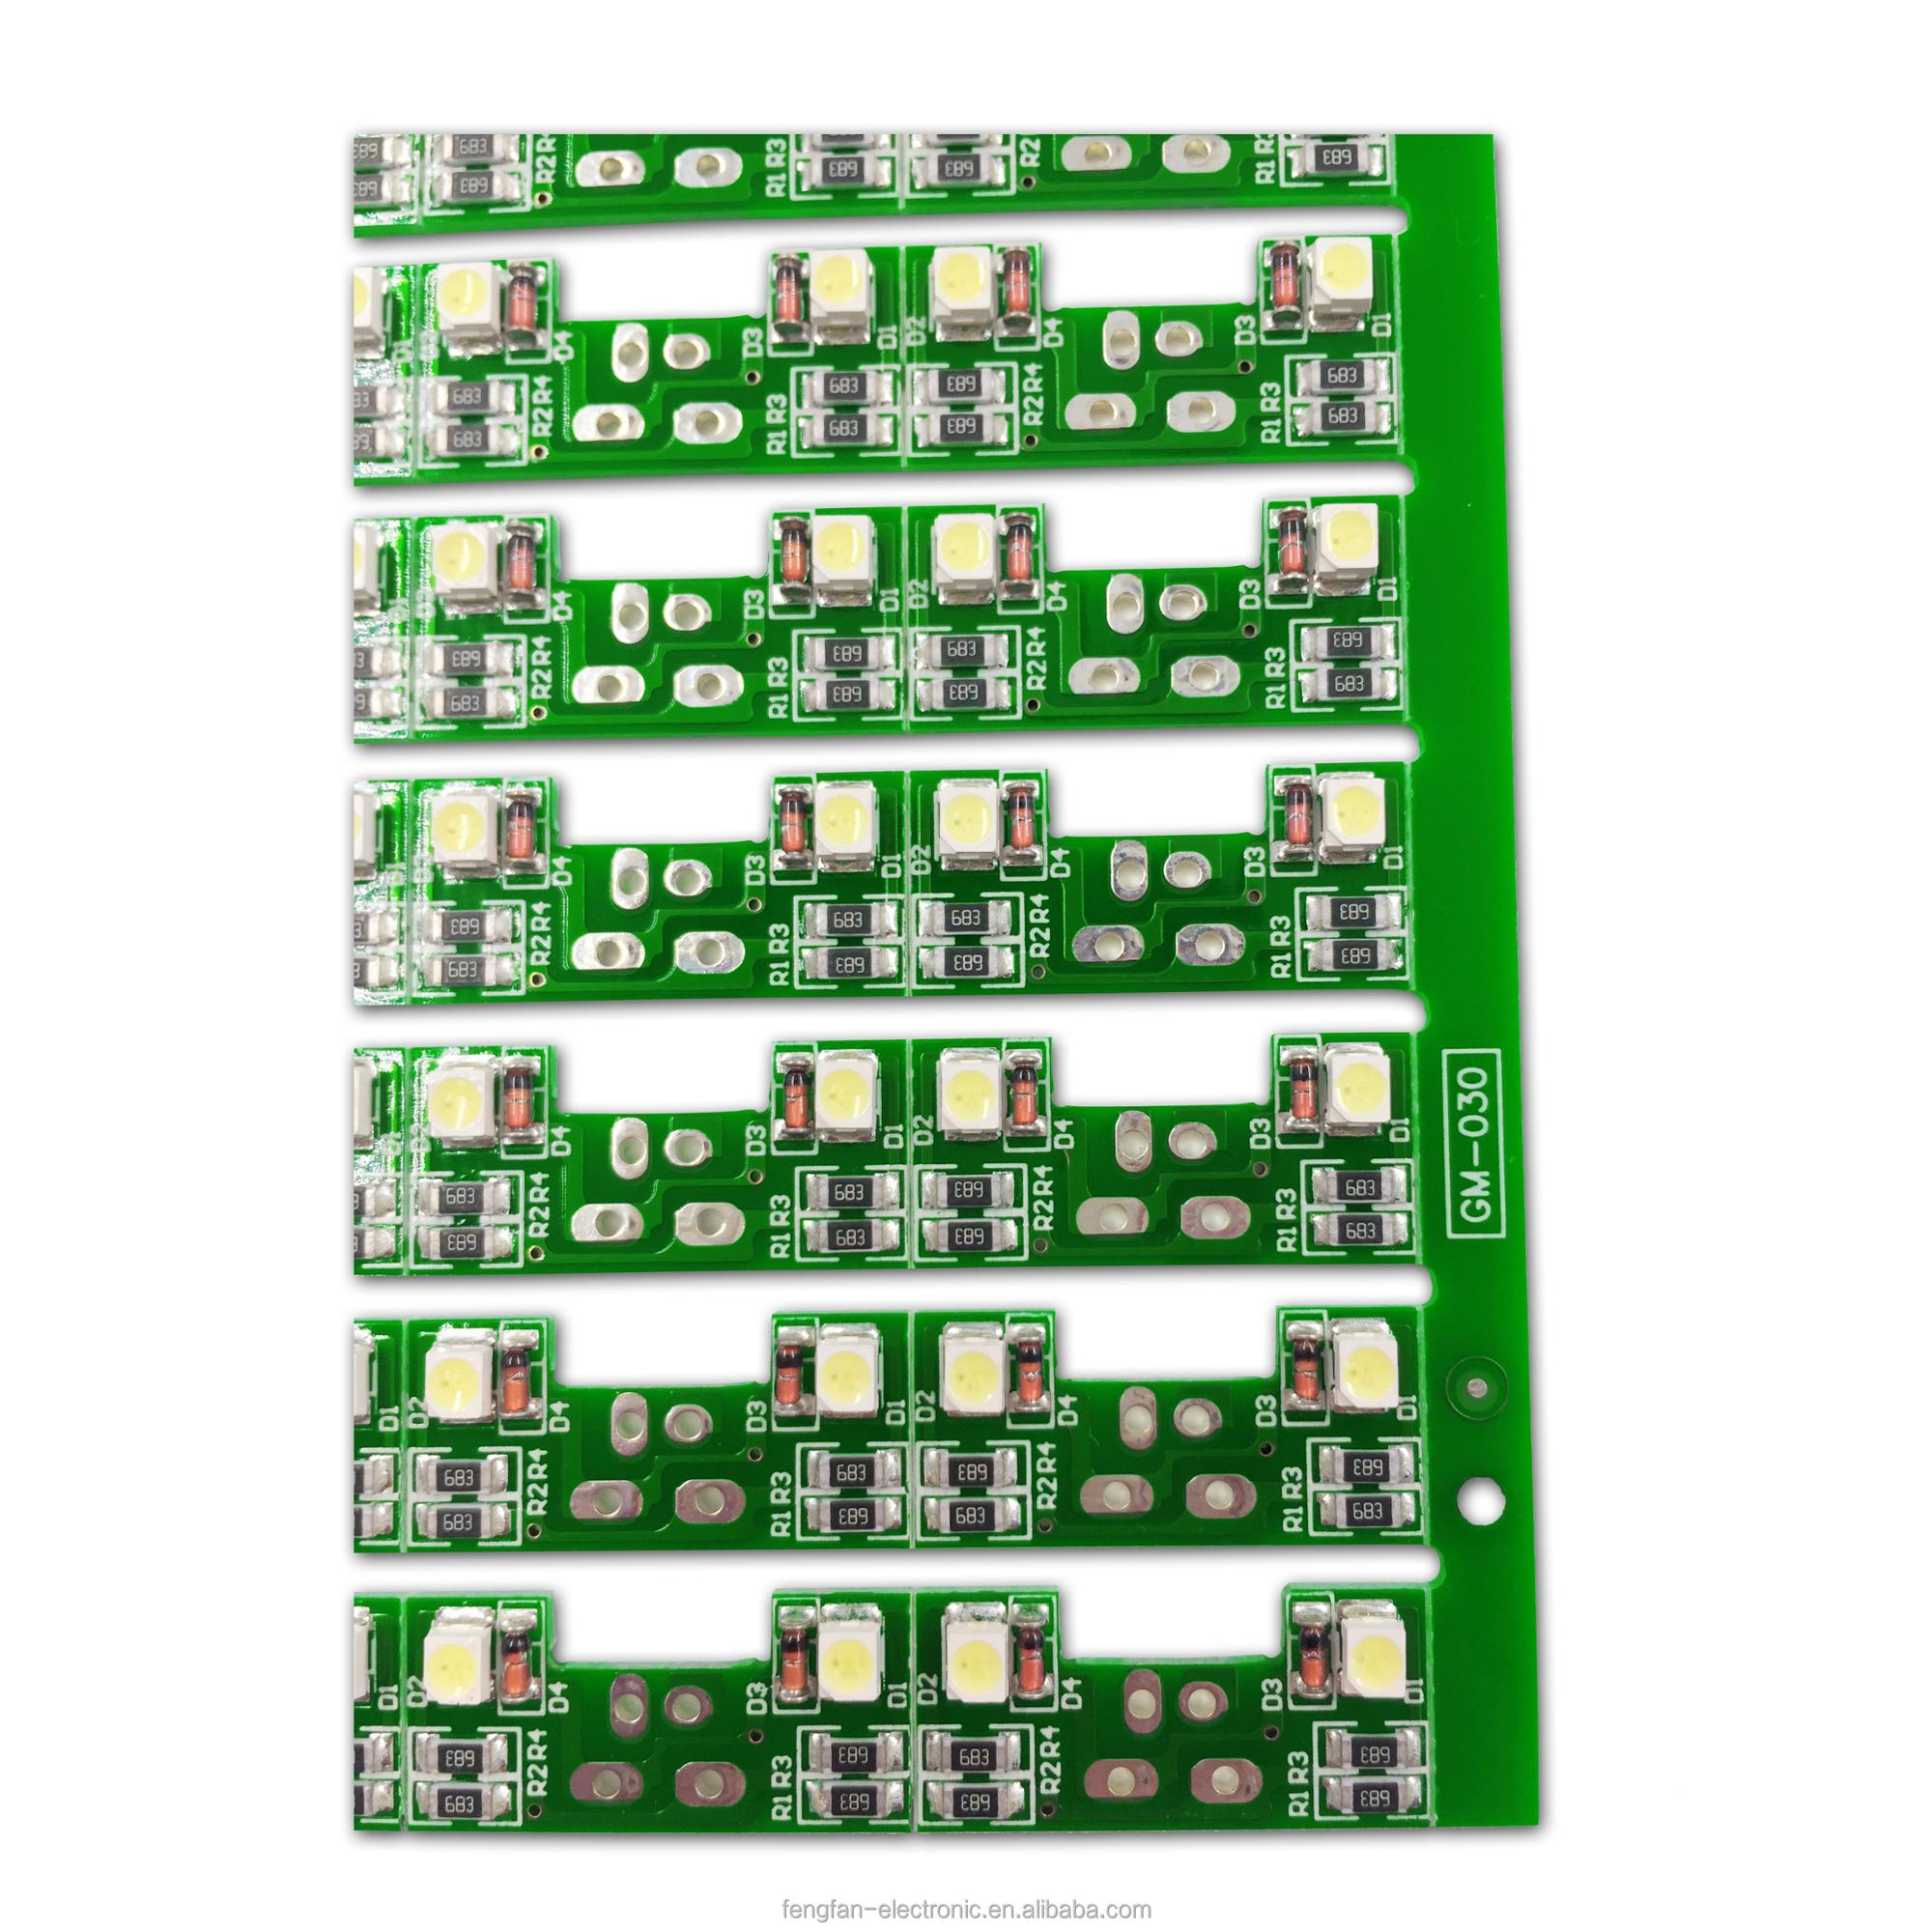 Sell Scrap Electronic Circuit Pcb Telecom Boards Gold Metals For